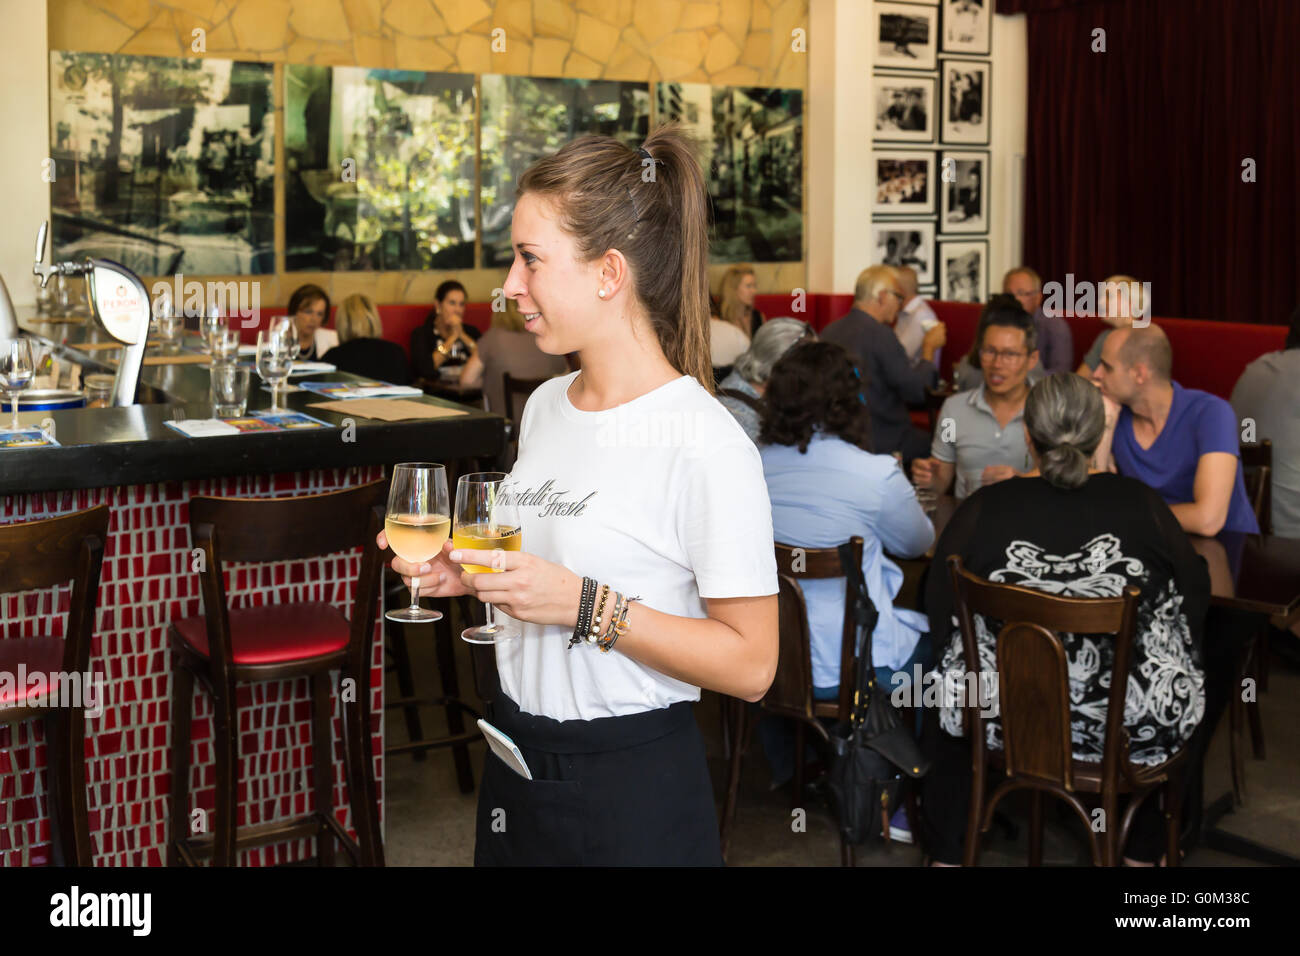 Interior shots of Fratelli Fresh with waitress taking drinks to a table, Potts Point, Sydney, NSW, Australia. - Stock Image